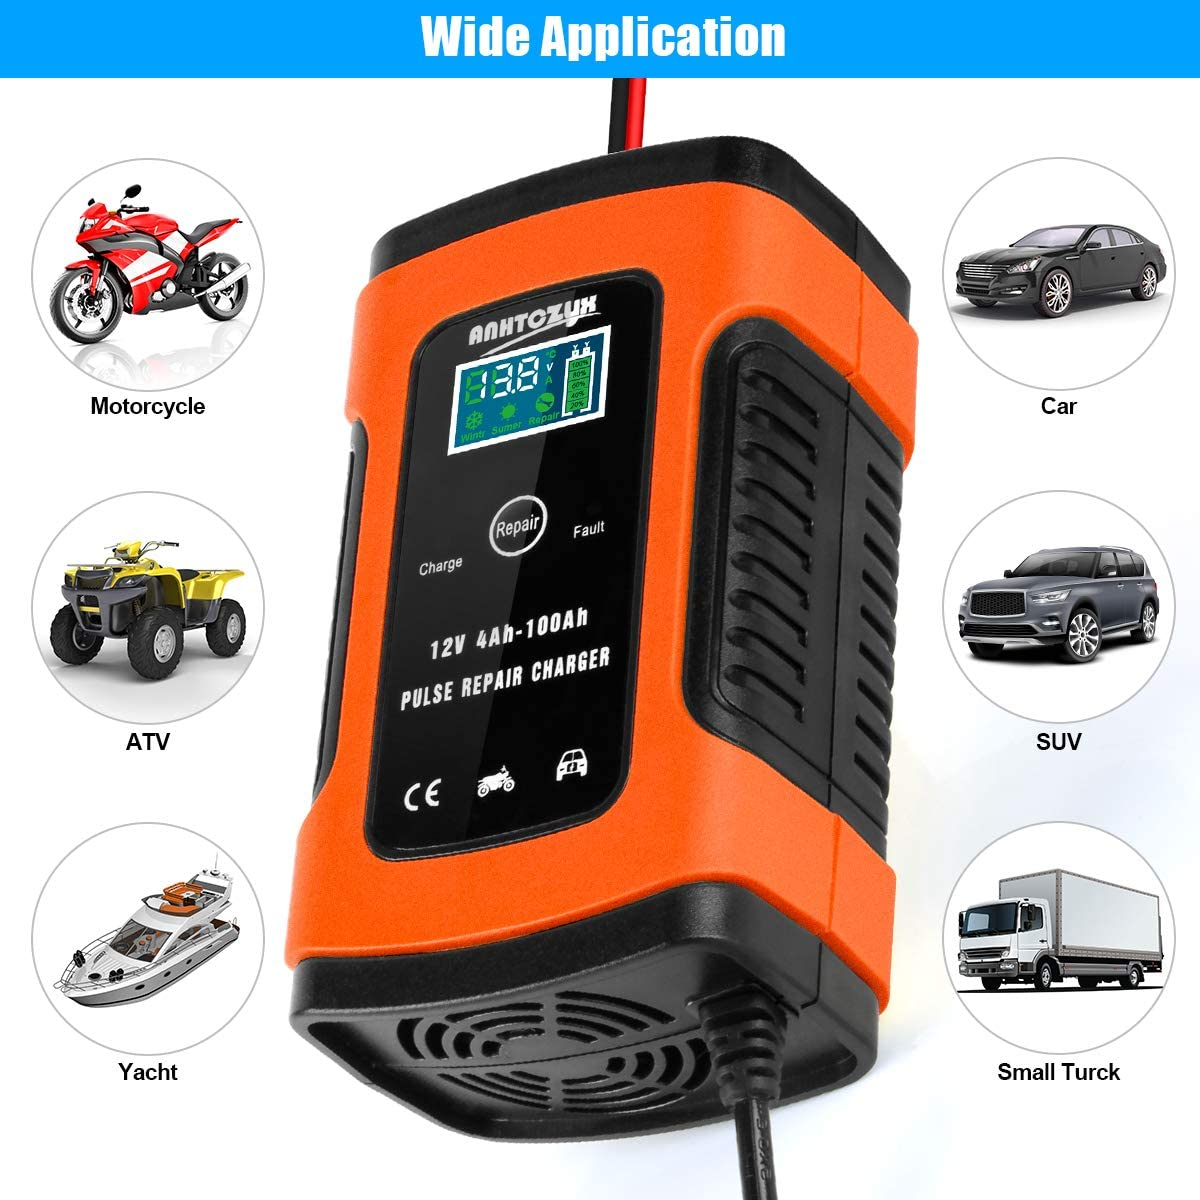 Orange Maintain and Repair Batteries for Cars Boat and More Hutigertech Car Battery Charger /& Maintainer 6A 12V Fully Automatic Battery Charger with LCD Screen Motorcycles Used to Charger